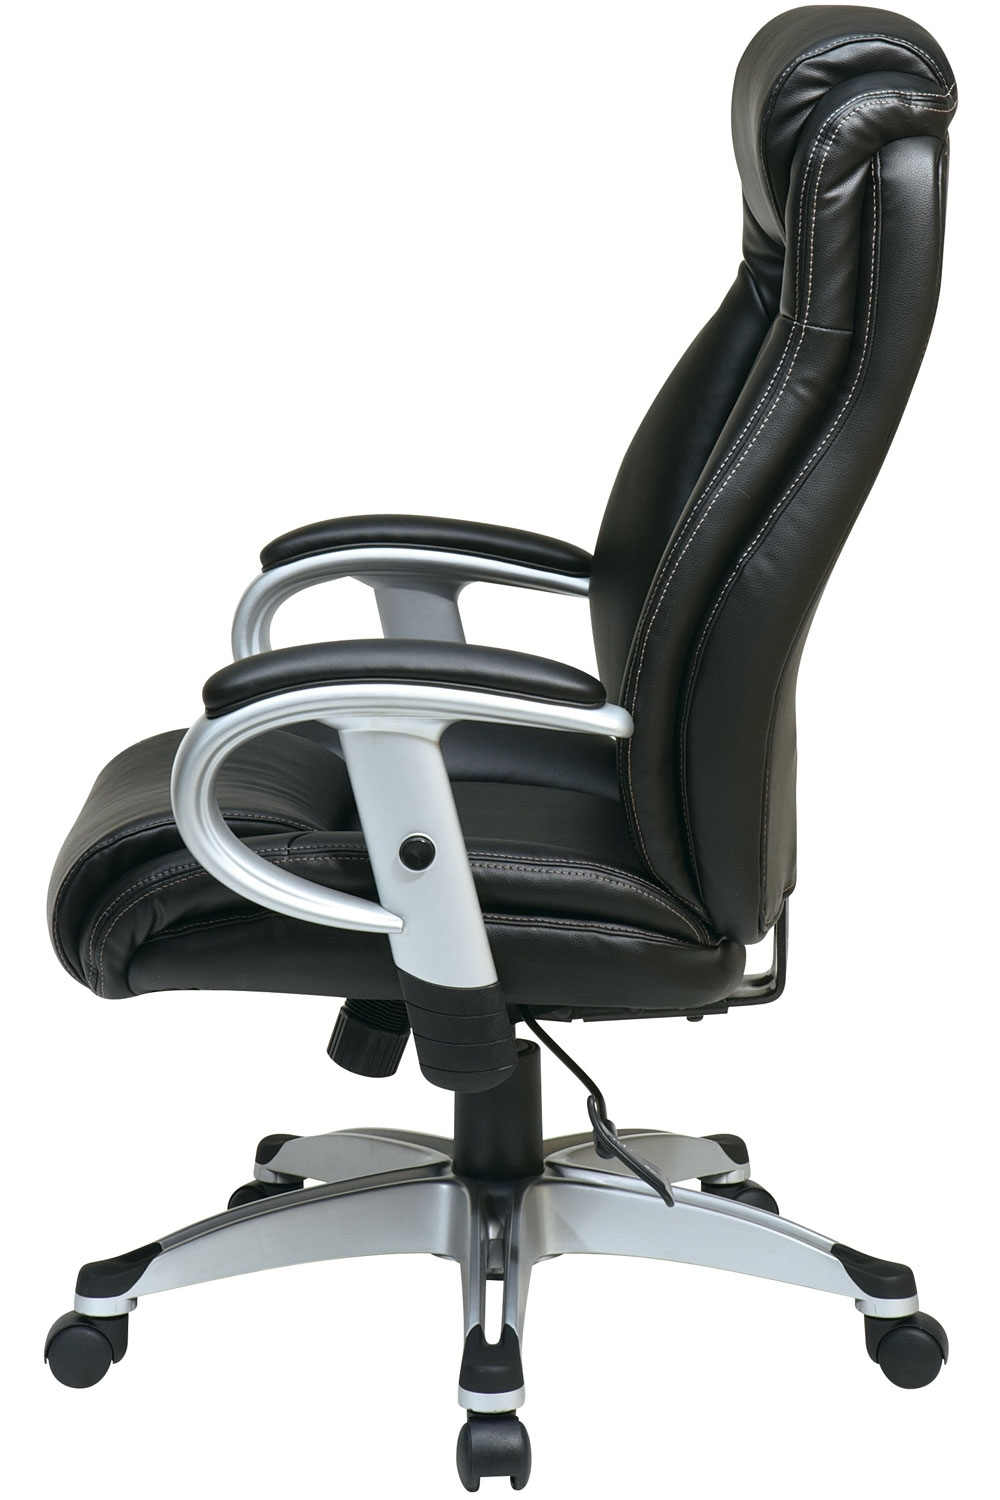 Ech52666 Ec3 Office Star – Executive Black Eco Leather Chair With Pertaining To Favorite Executive Office Chairs With Adjustable Arms (View 6 of 20)